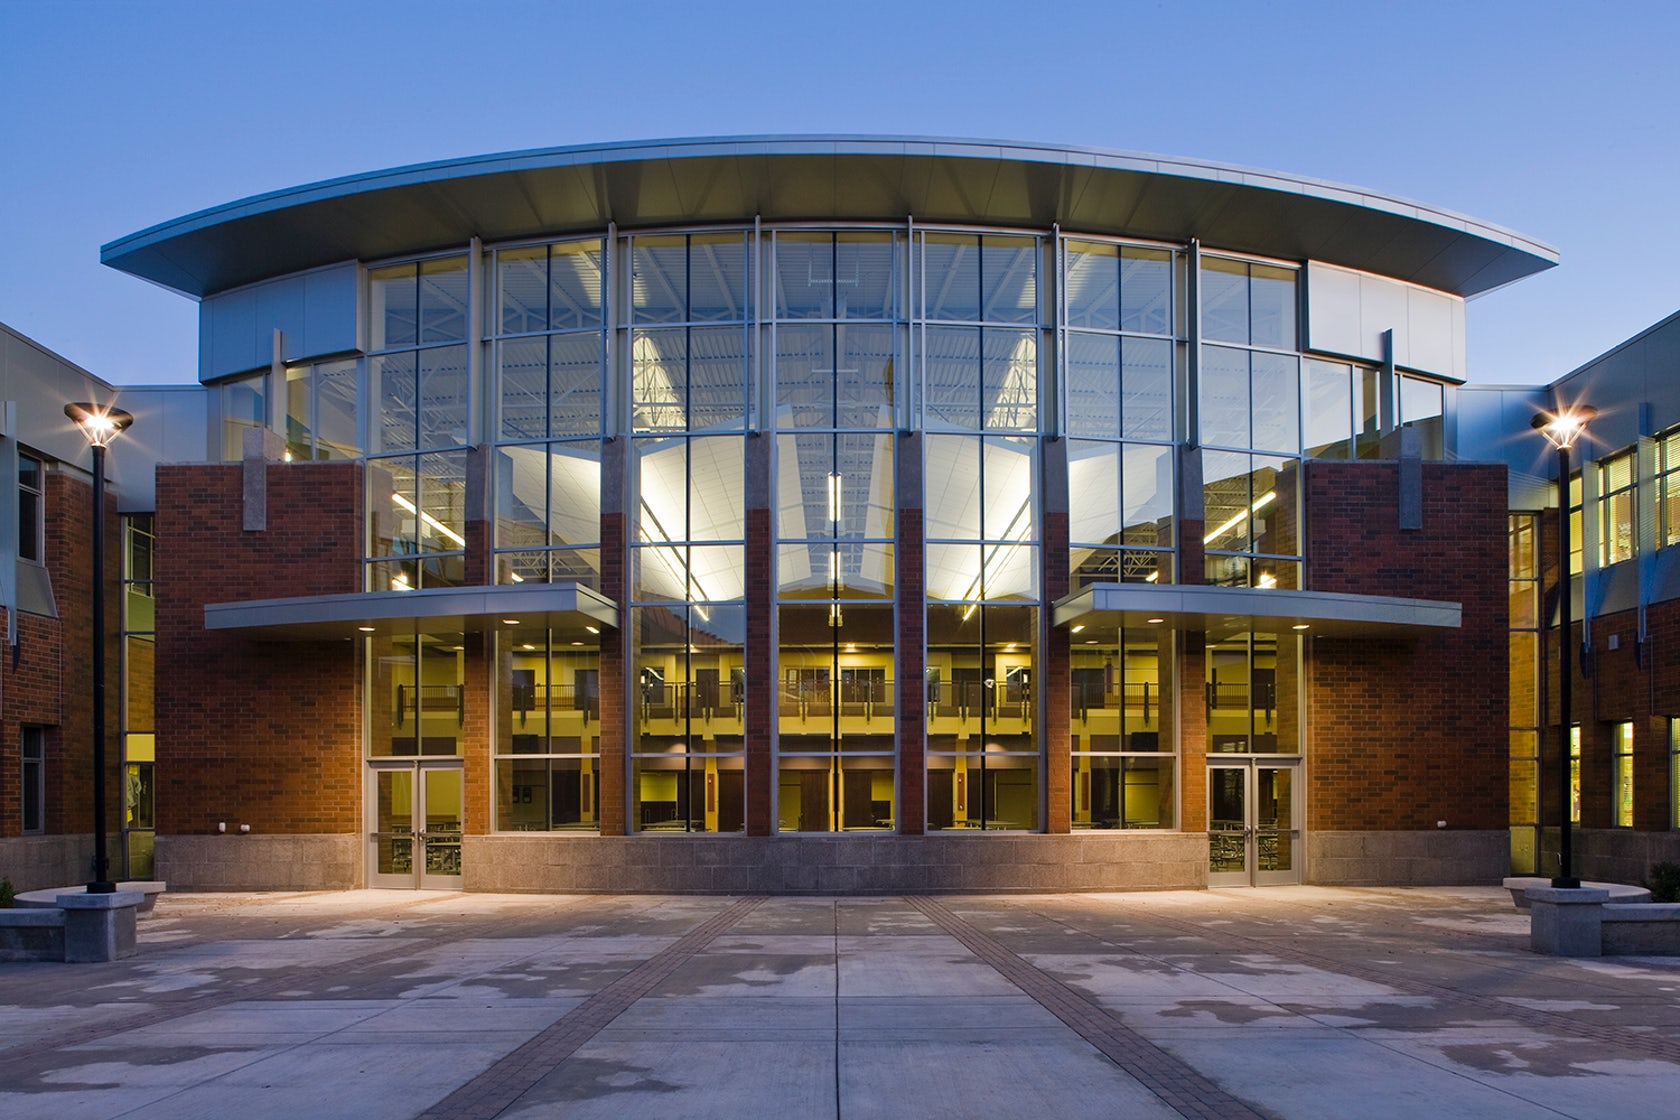 Rogers high school renovation addition architizer for Rogers high school swimming pool